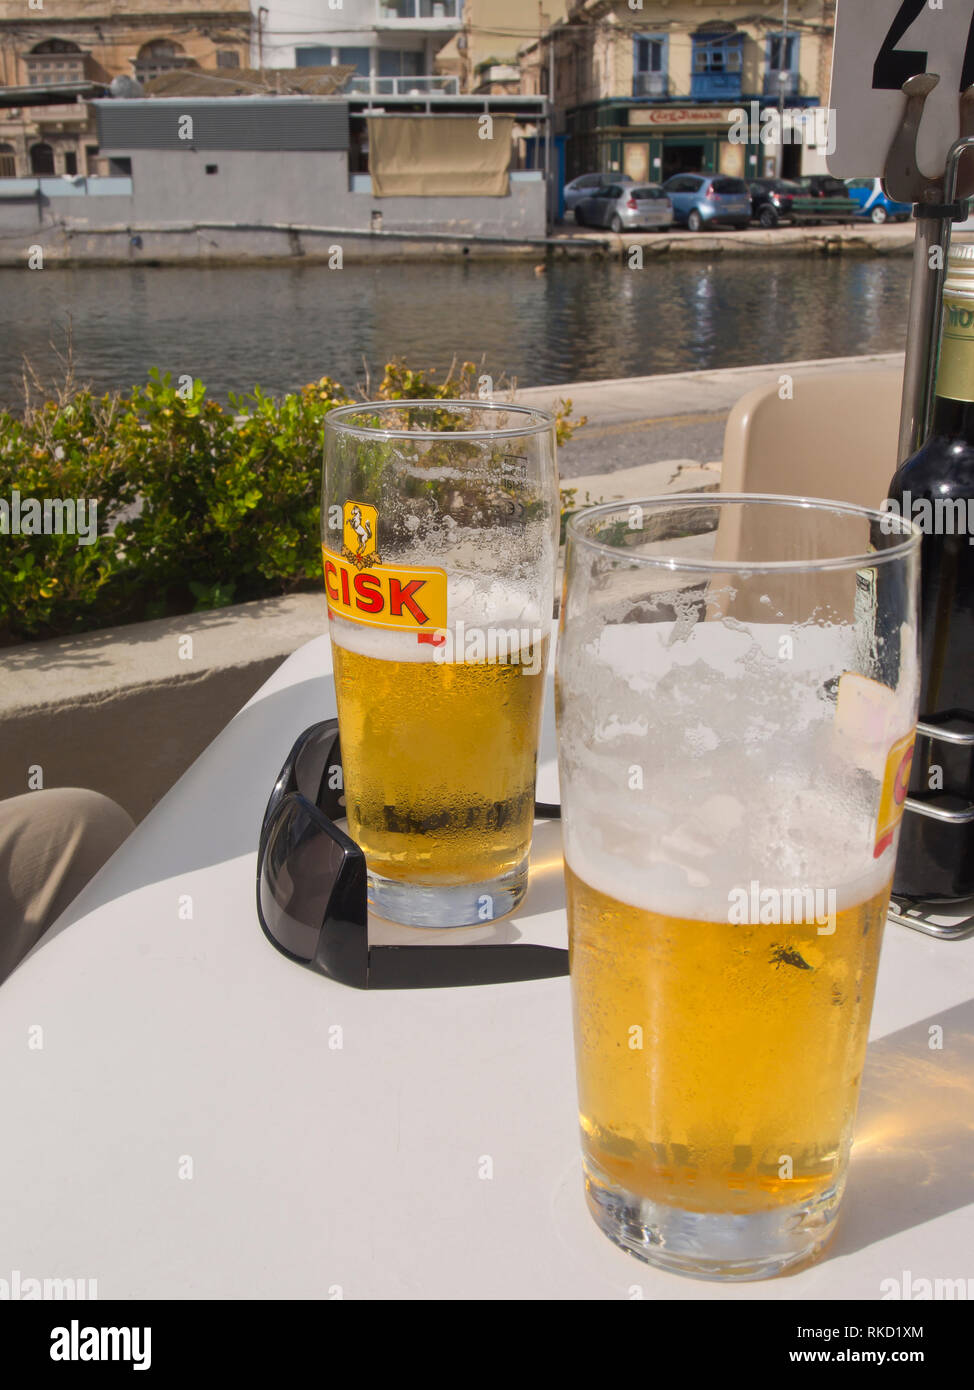 Half full - or empty glasses of Cisk beer on an outdoors table in the sun, holiday in Malta near Valetta Stock Photo